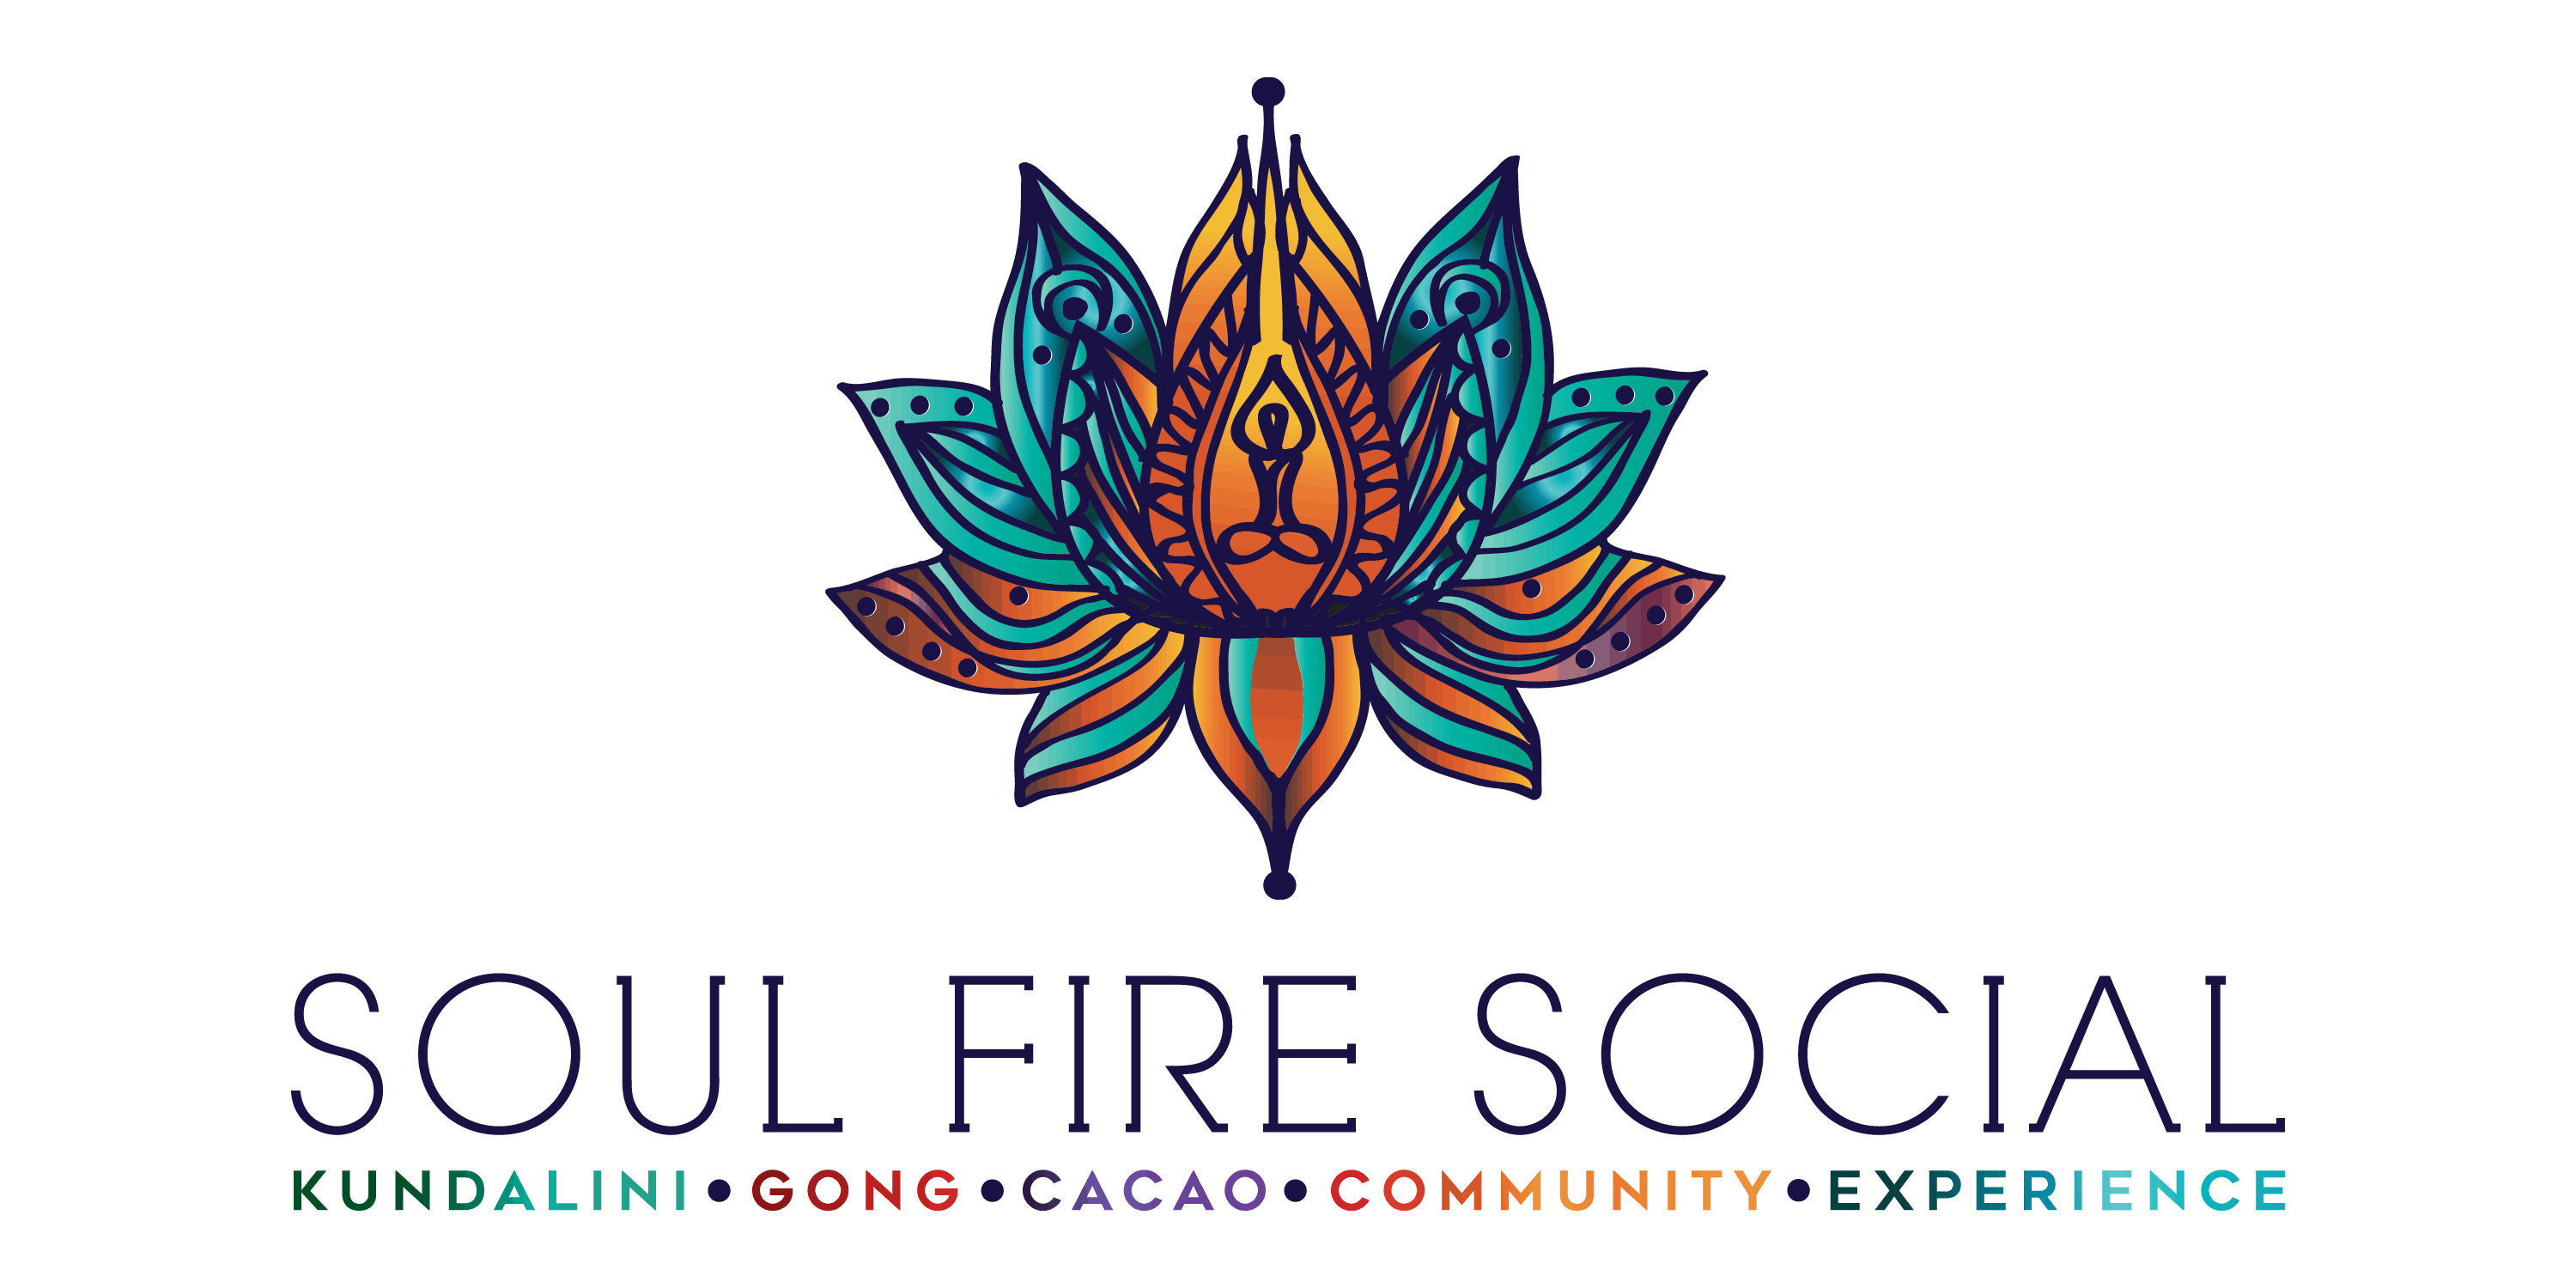 Cacao & Cacao Ceremonies | Soul Fire Social - Heart Opening